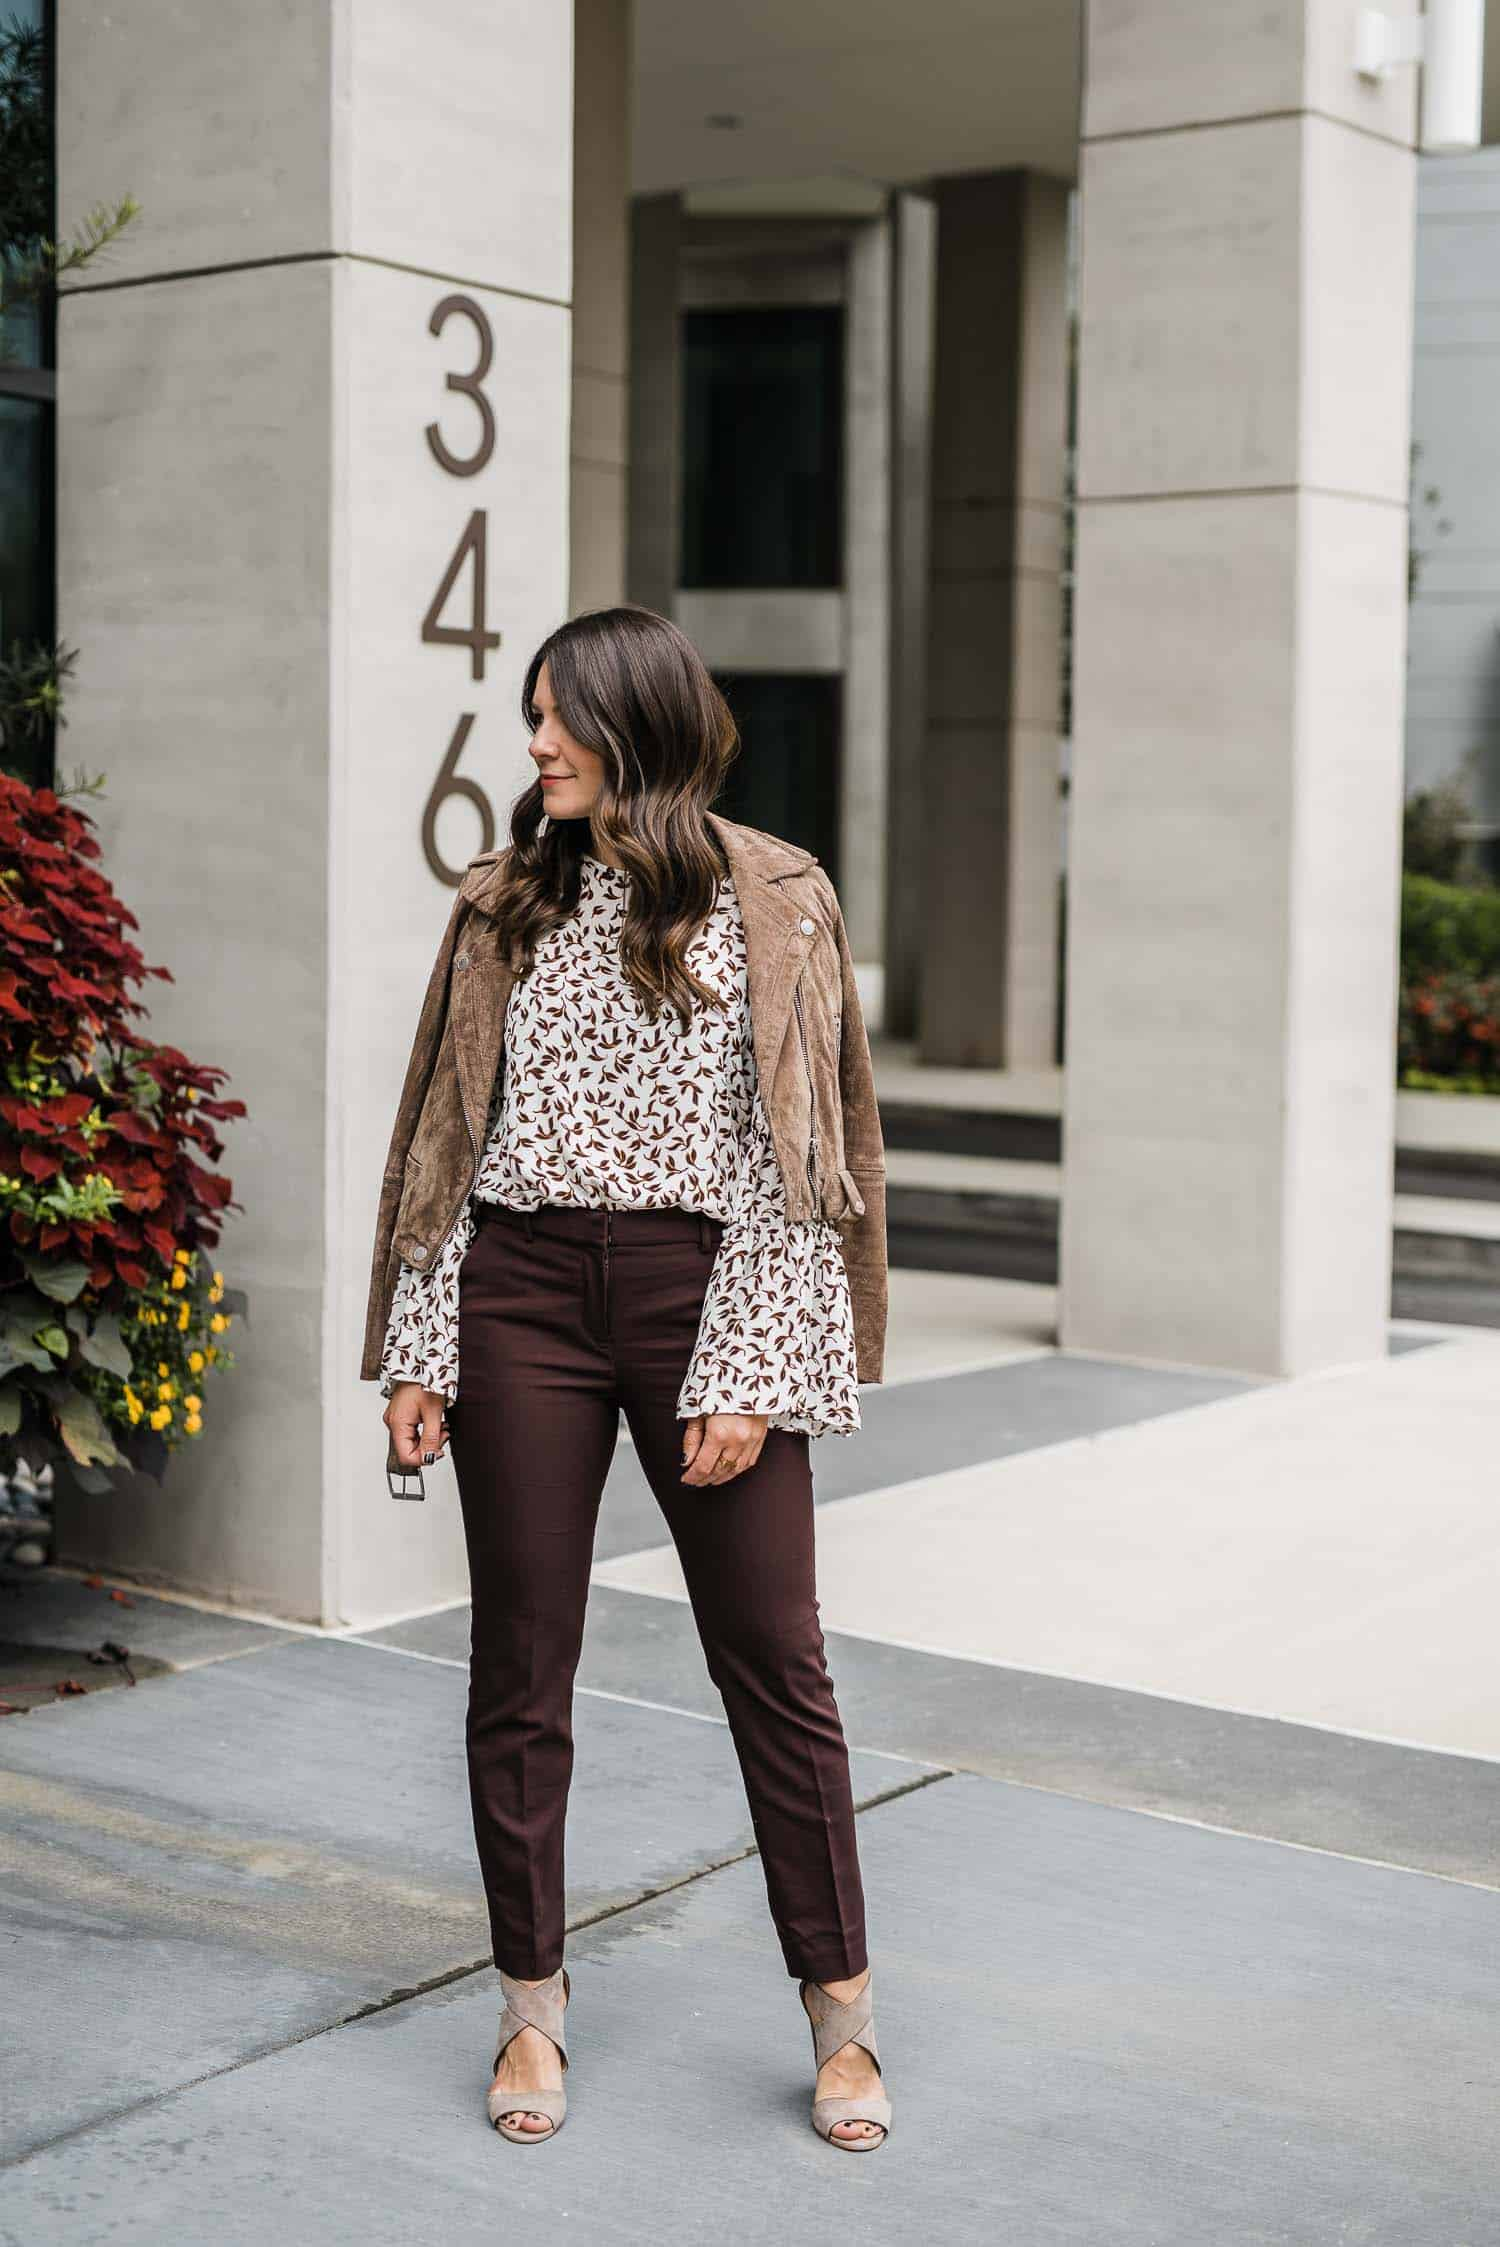 casual work outfit ideas for fall, how to style work pants for fall, burgundy work pants, casual office outfit - My Style Vita